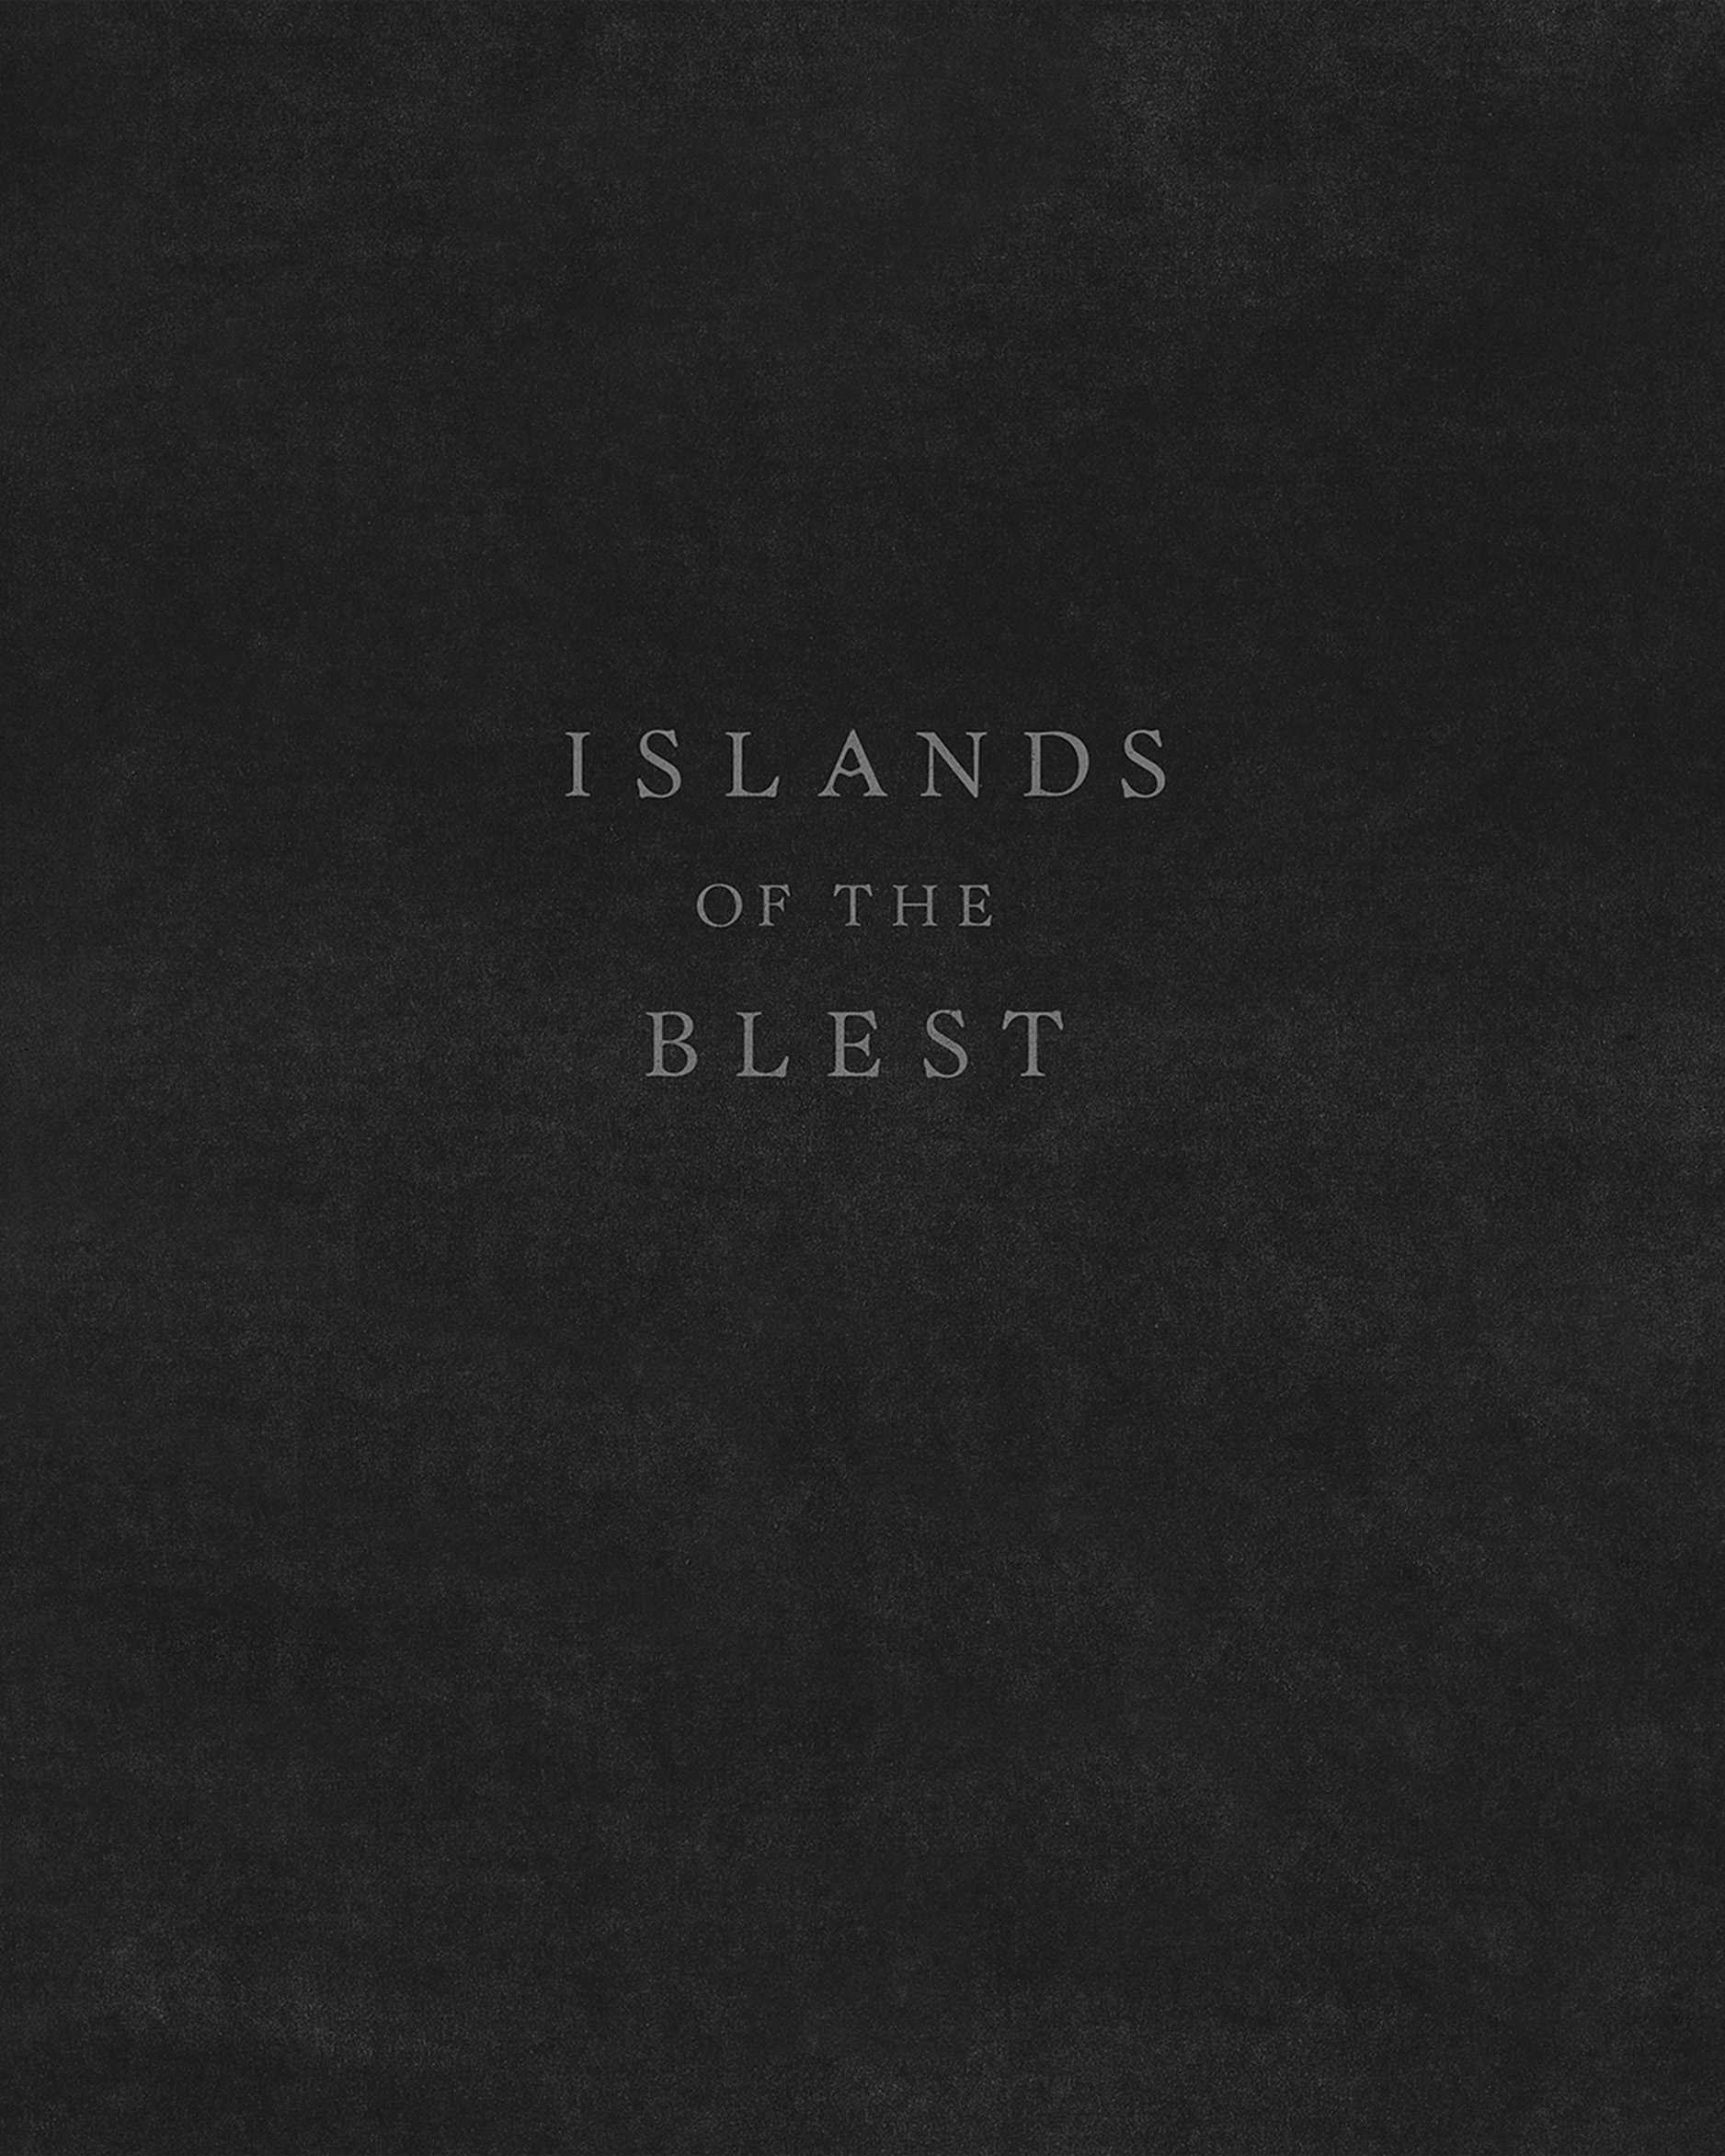 Islands of the Blest  is a book of historic photos by various photographers that were sourced from online public archives. These images were taken over a hundred year period (1870s – 1970s) and loosely tell the story of the exploration, settlement, and industrialization of the American West.